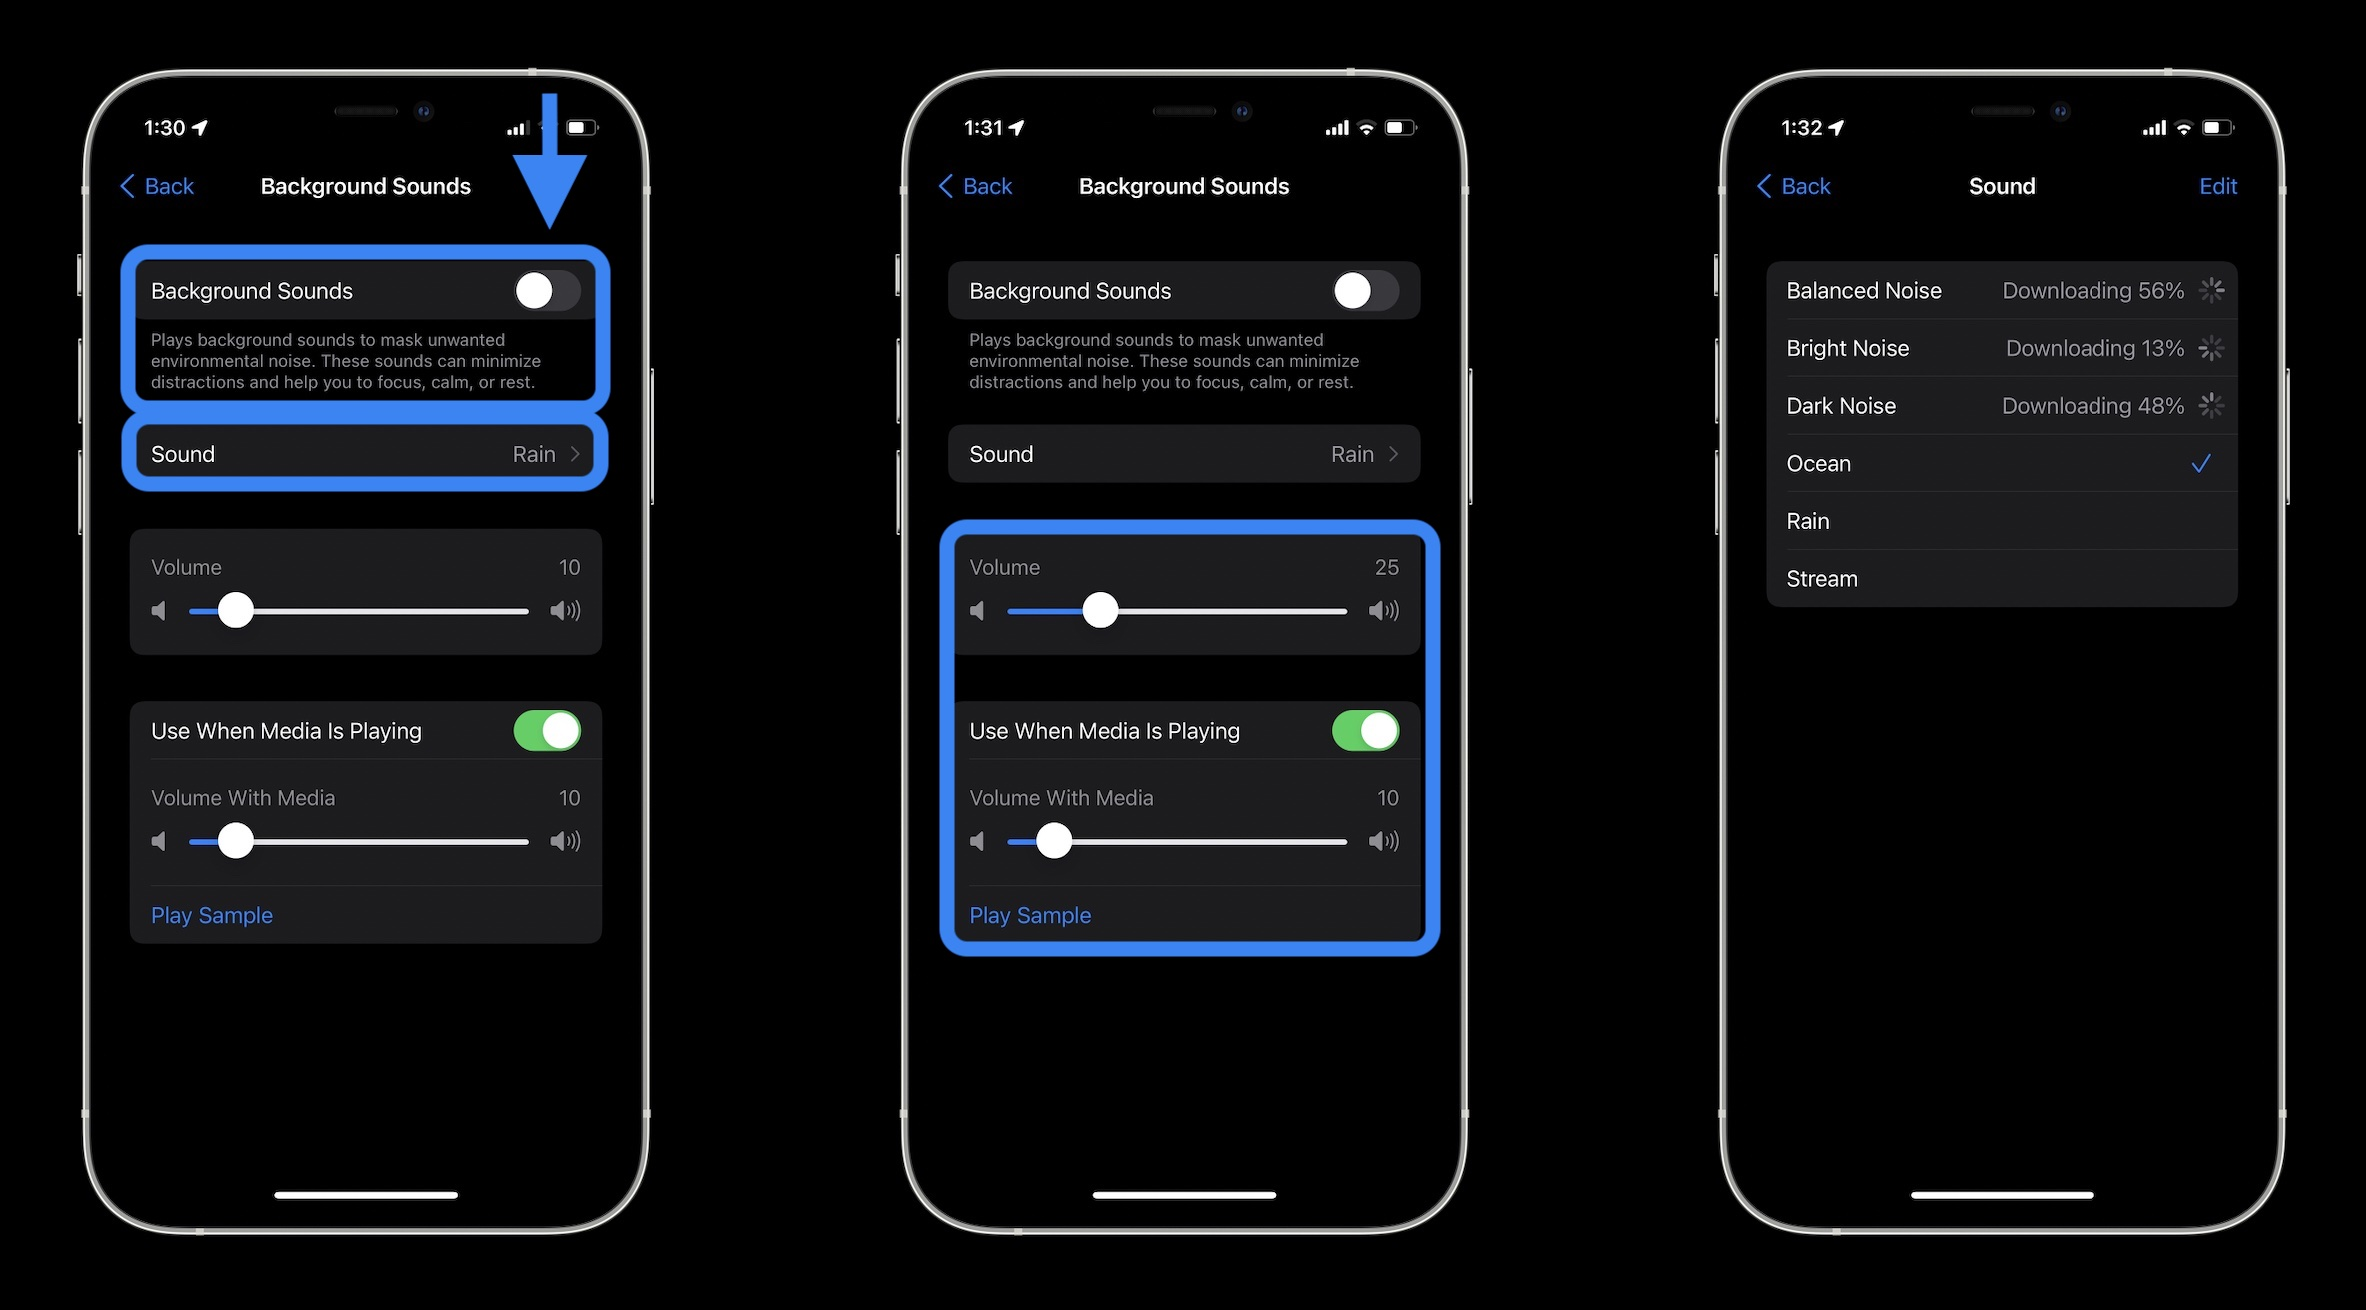 How to use iPhone Background Sounds in iOS 15